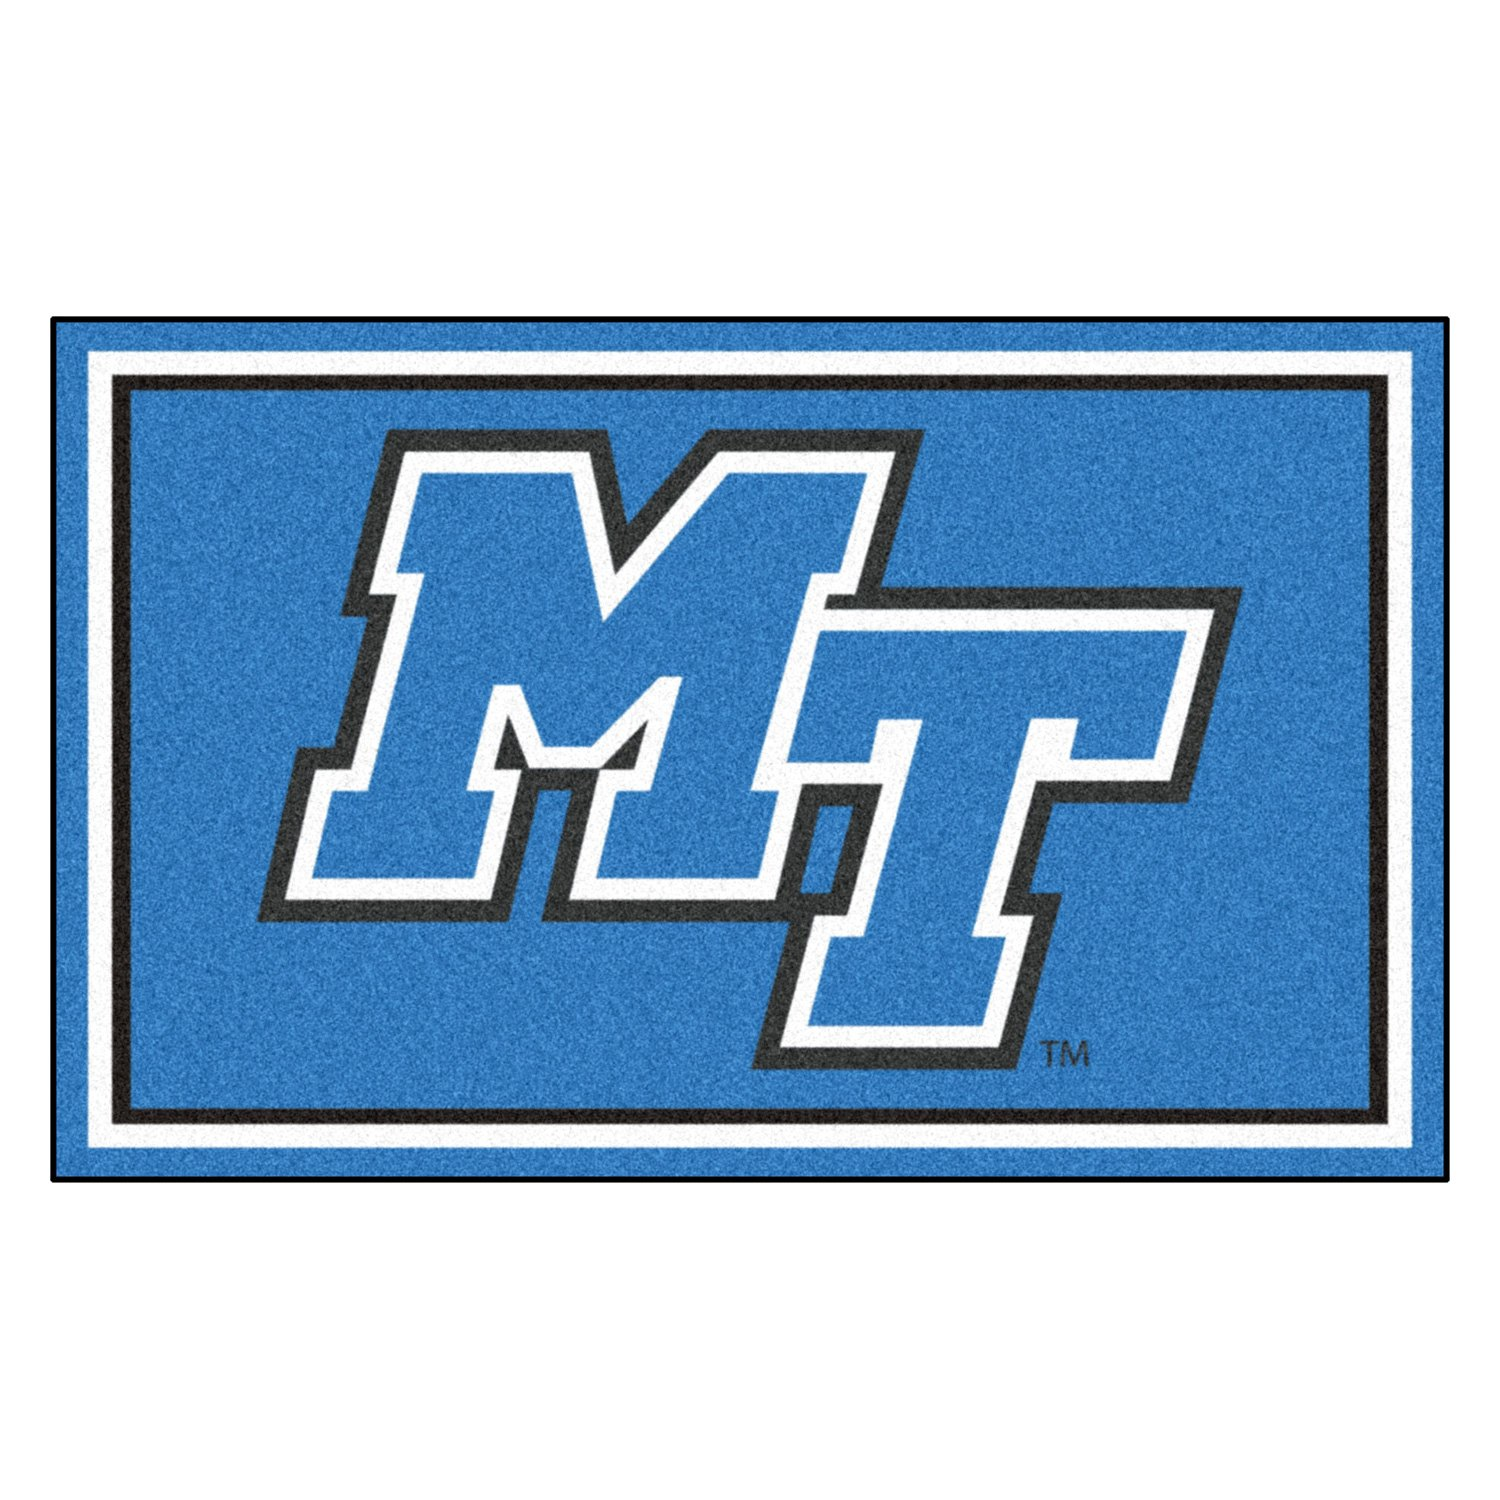 Fanmats 174 20214 Middle Tennessee State University Logo On